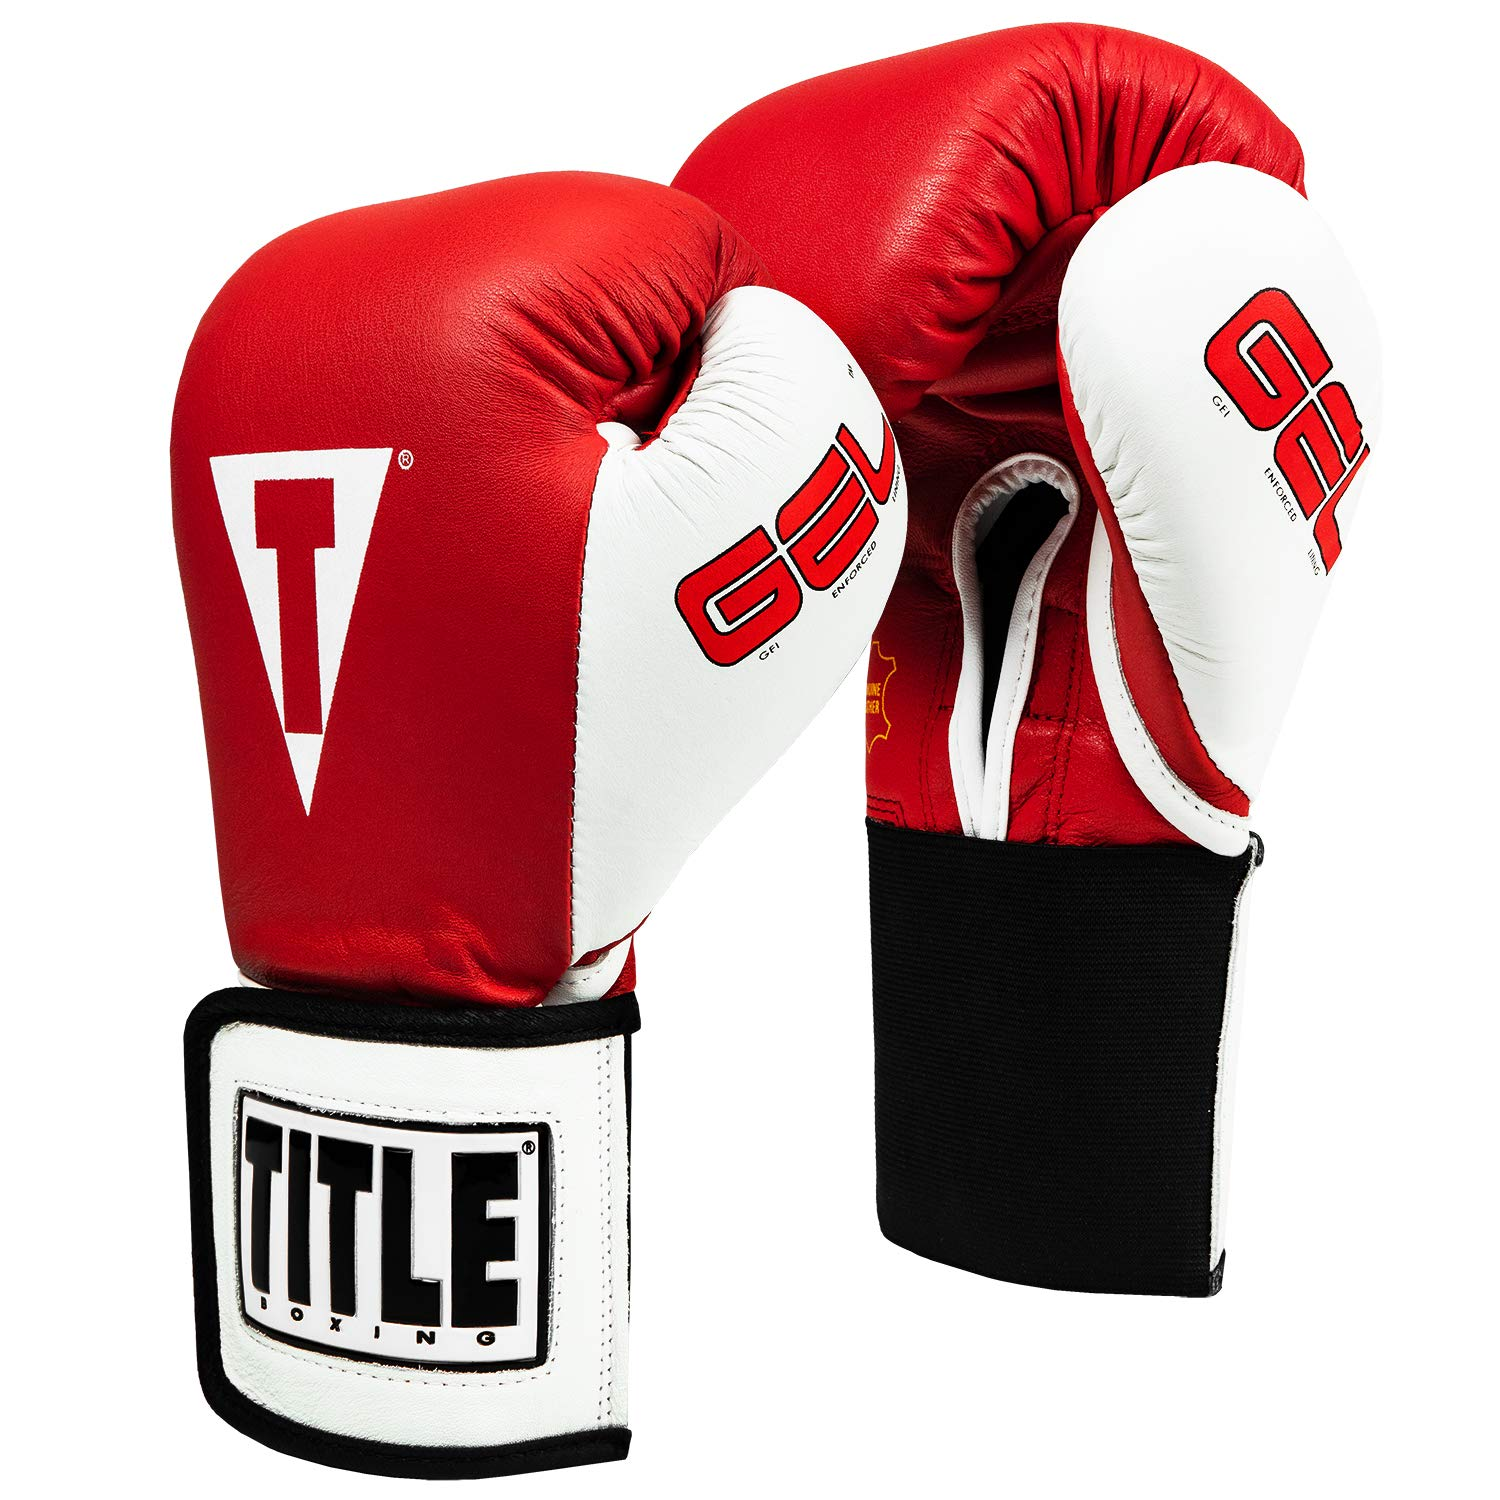 Title Gel World Elastic Training Gloves — Best Sparring Gloves For Air Circulation